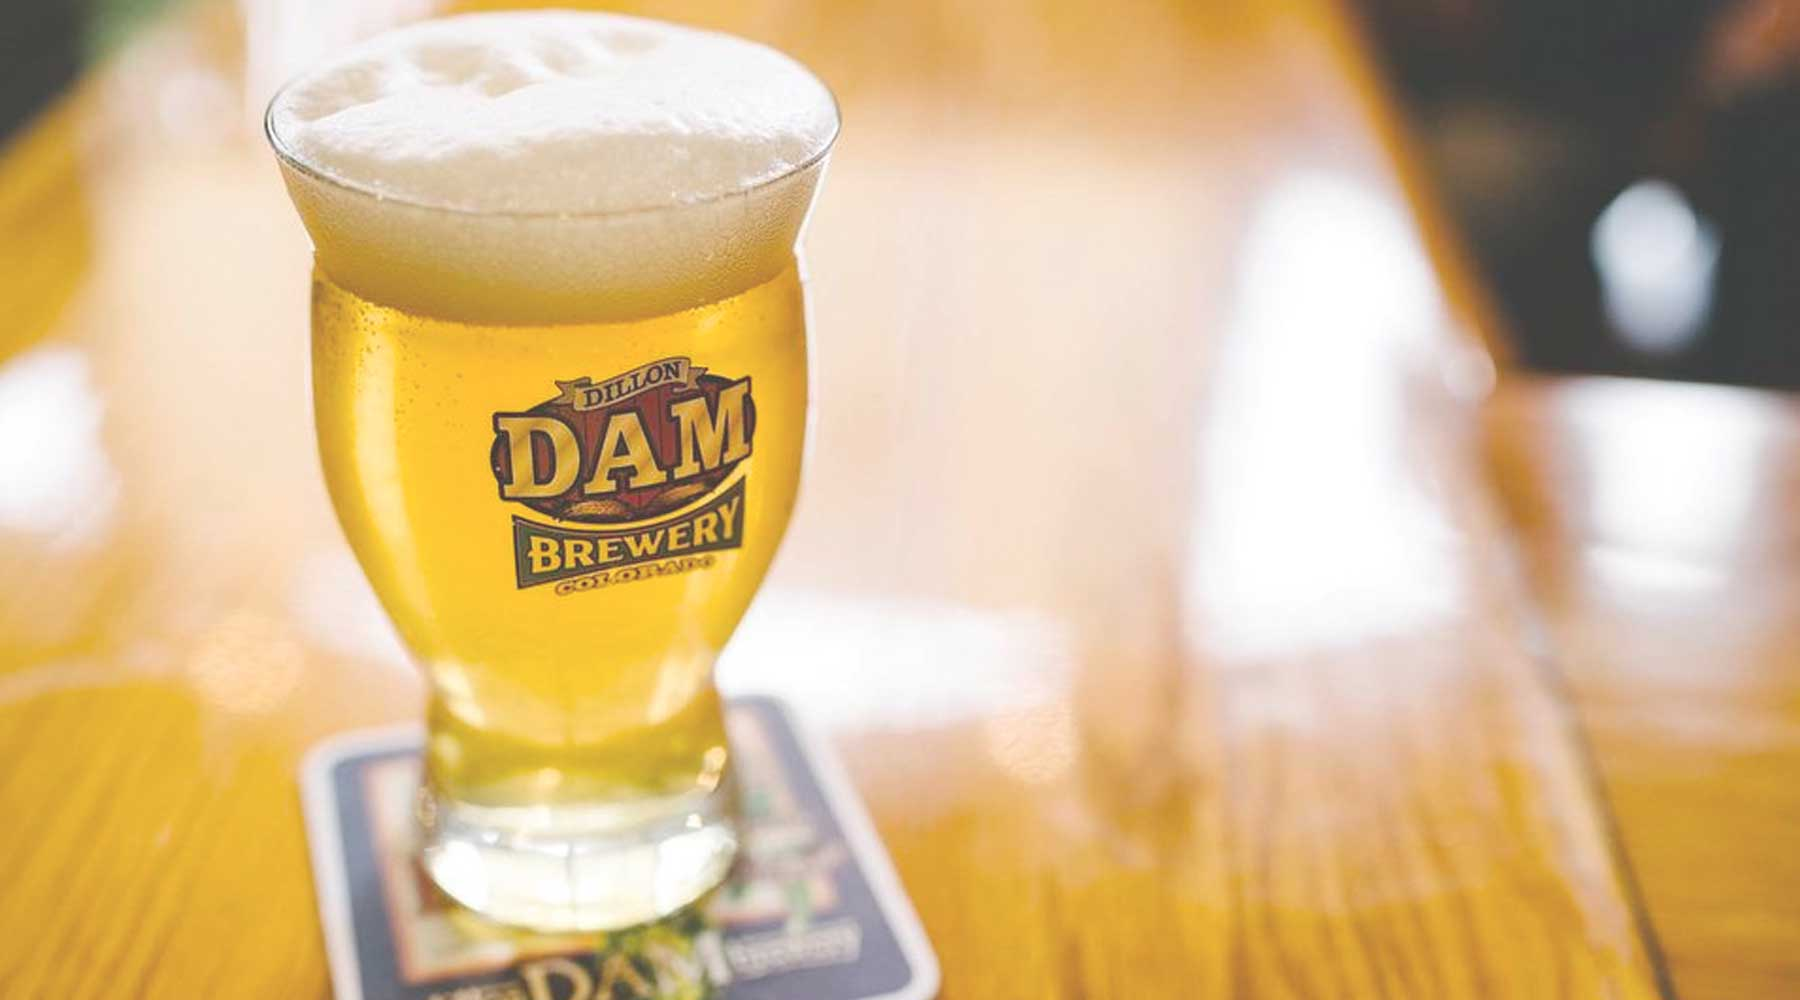 Dillon Dam Brewery | Just Wine